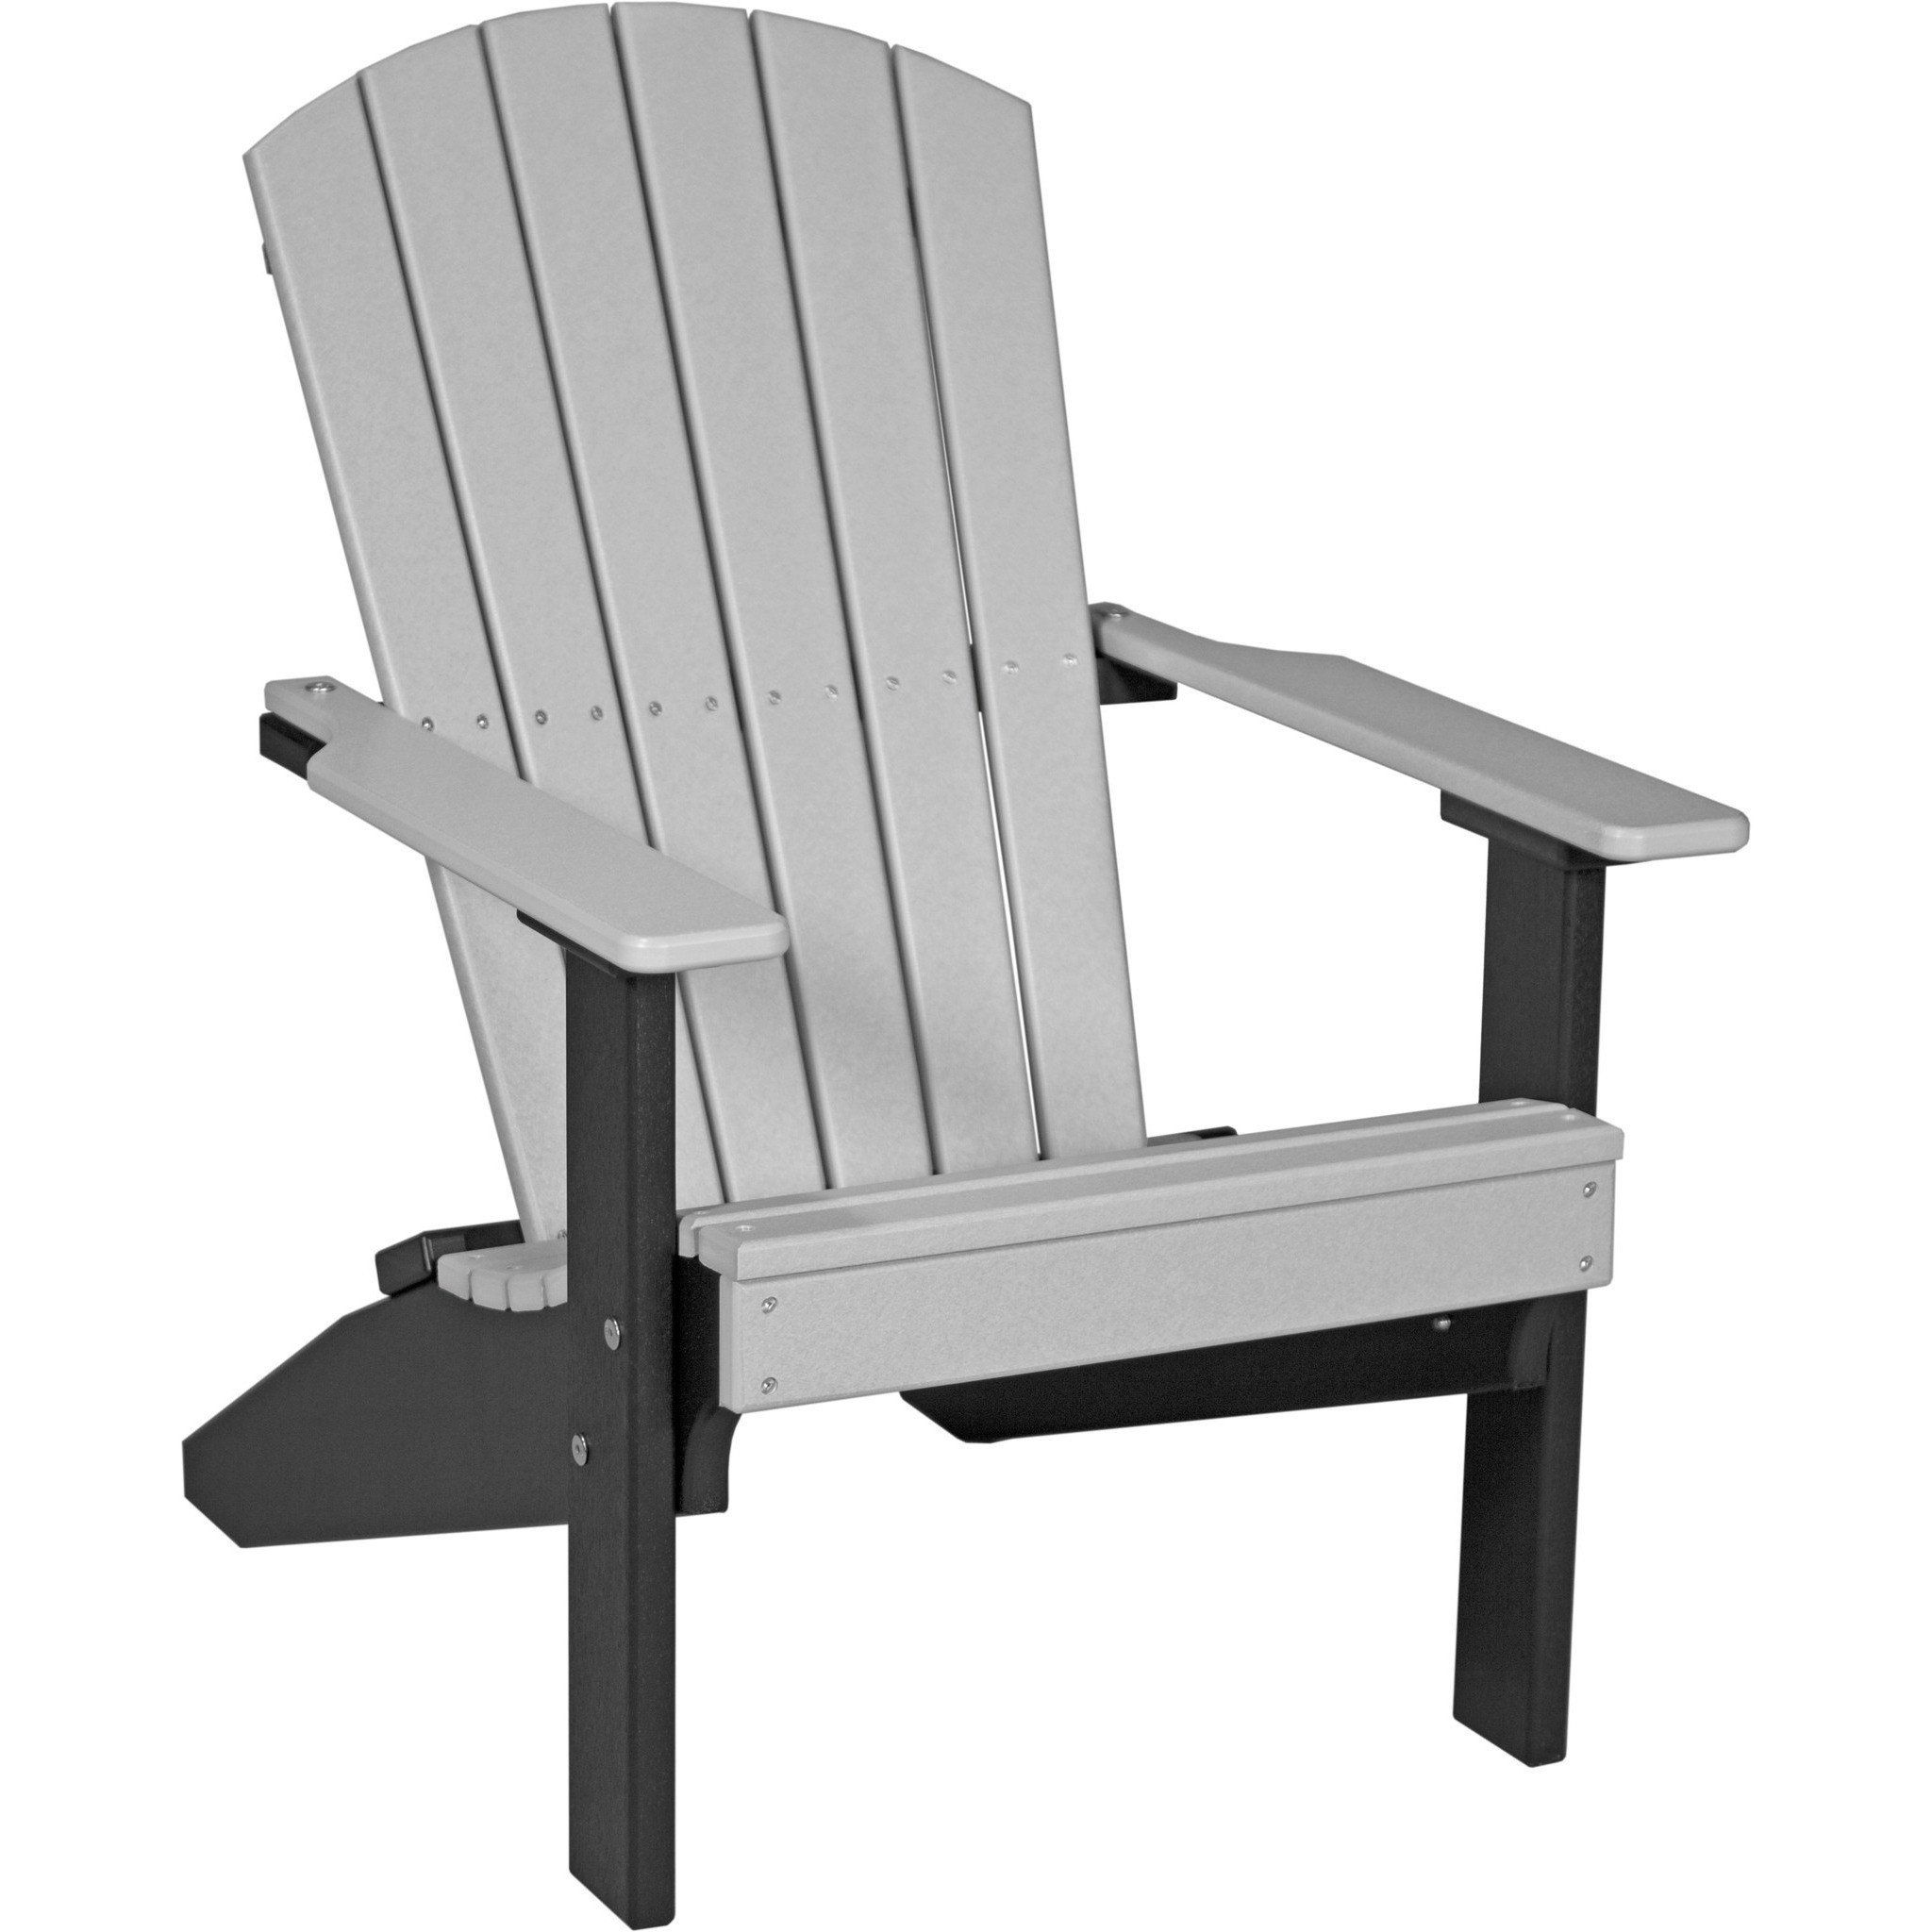 Luxcraft Recycled Plastic Lakeside Adirondack Chair Recycled